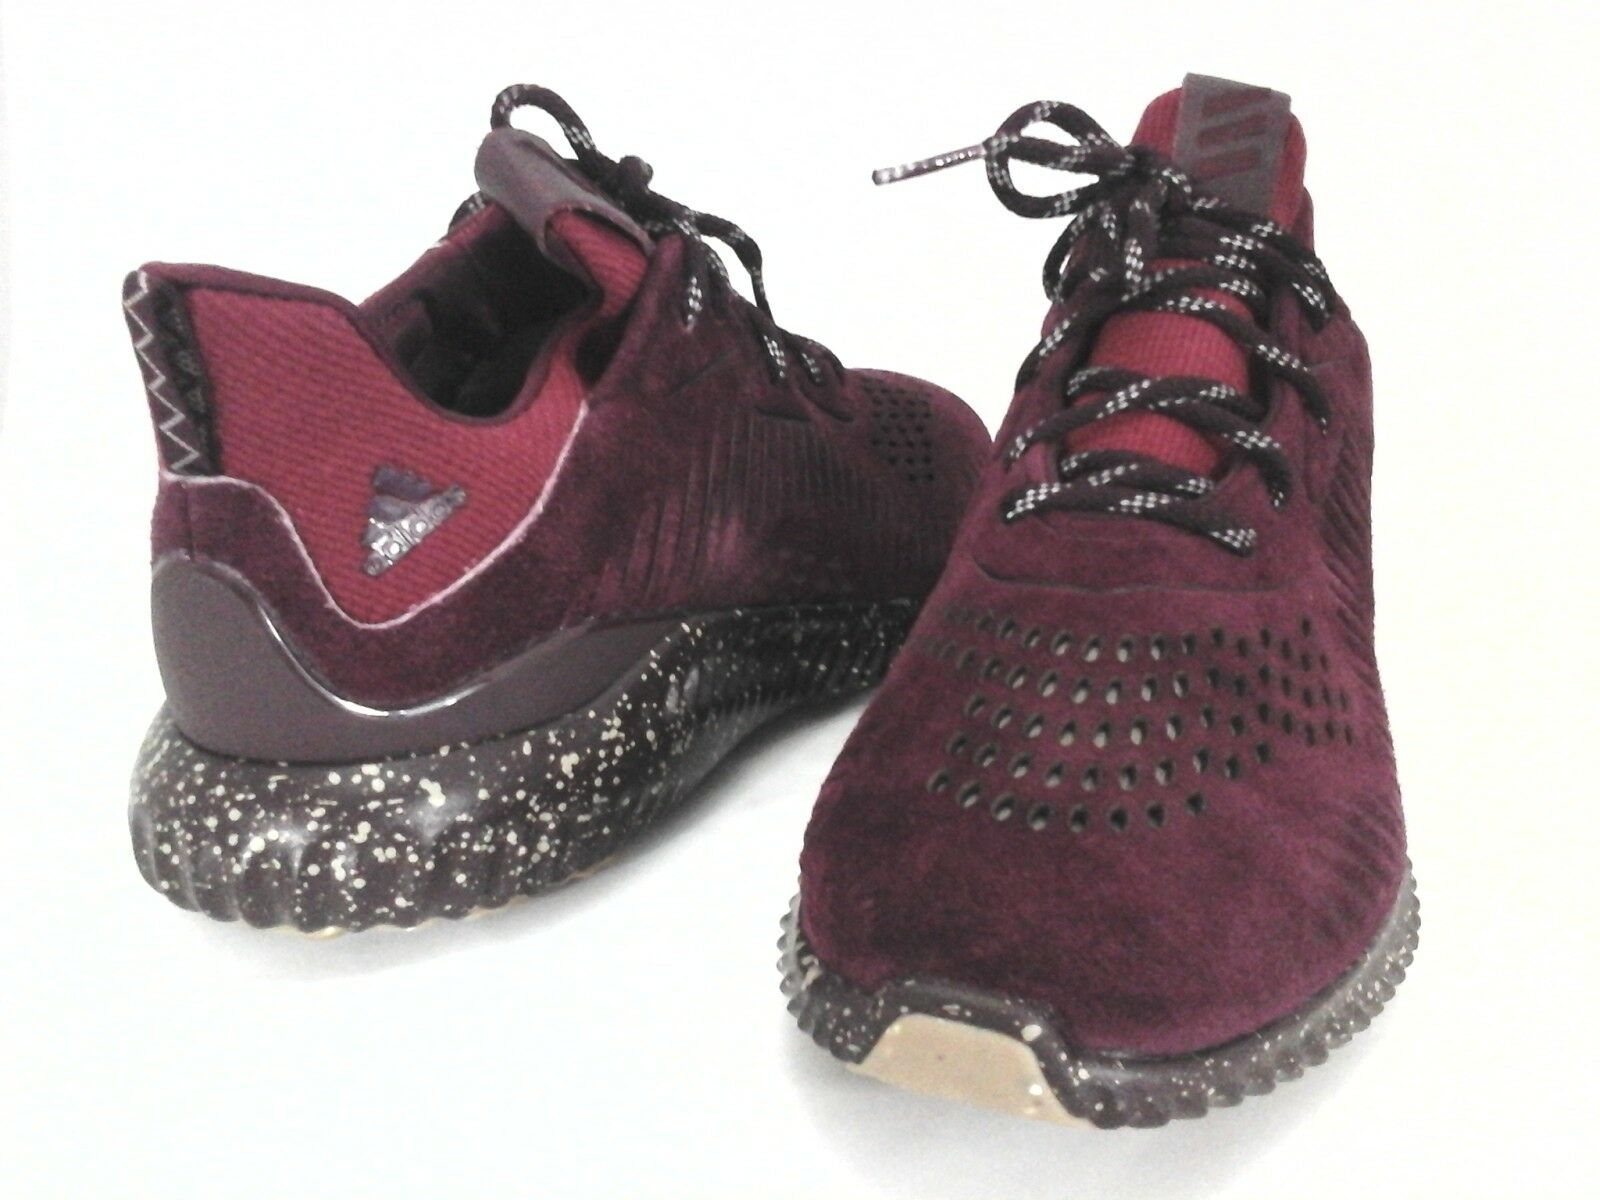 ADIDAS Alphabounce Shoes Sneakers Maroon Red Suede CQ1189 Mens US 13  New